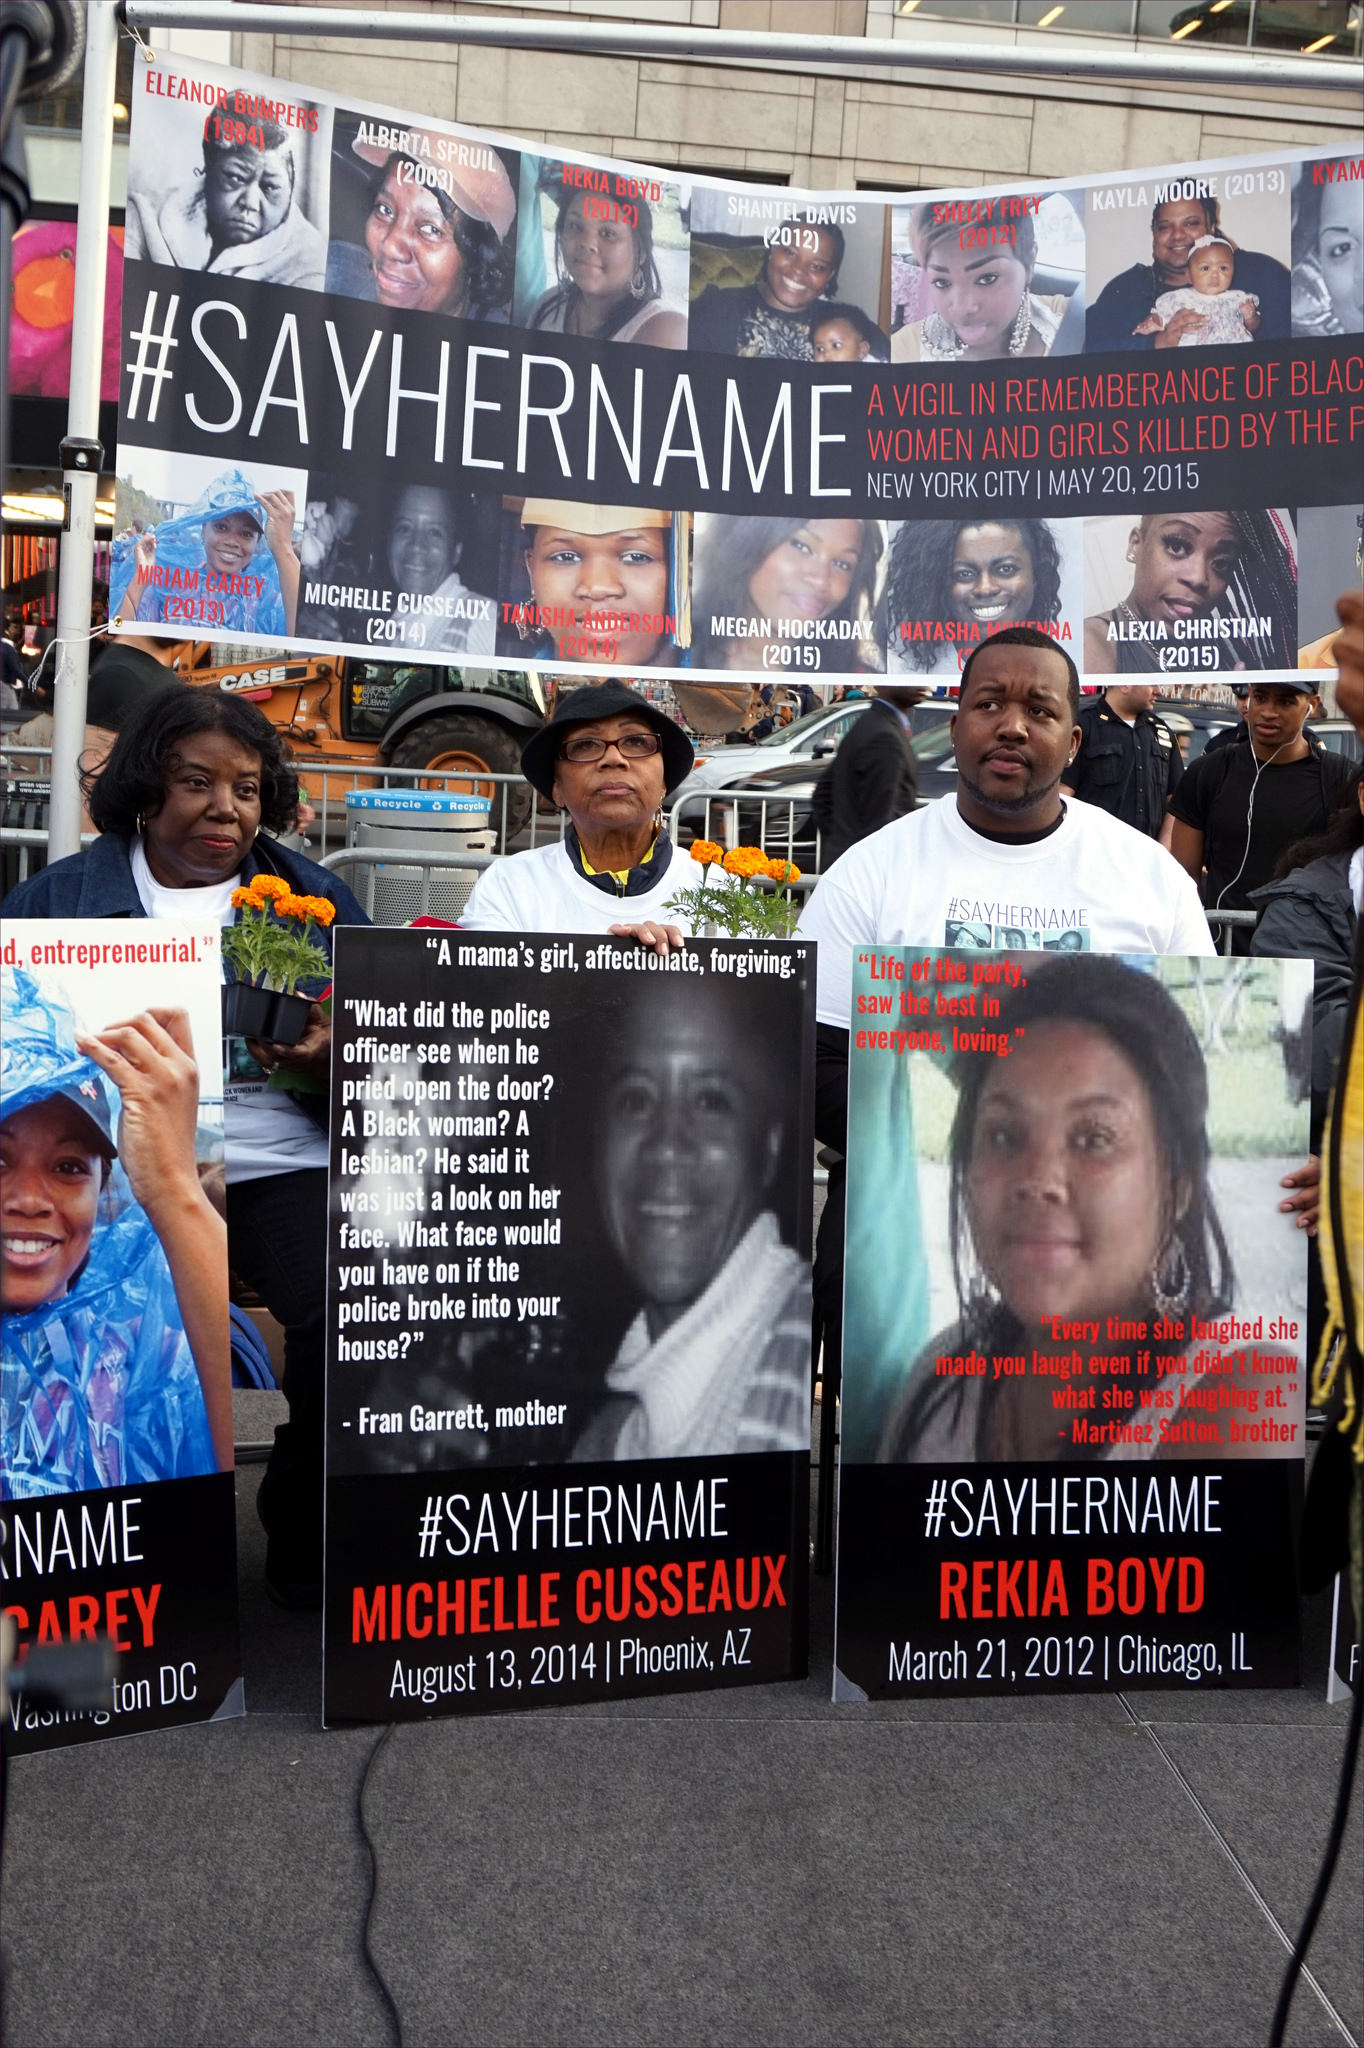 A Vigil in remembrance of Black women and girls killed by the police. (flickr/The All-Nite Images)